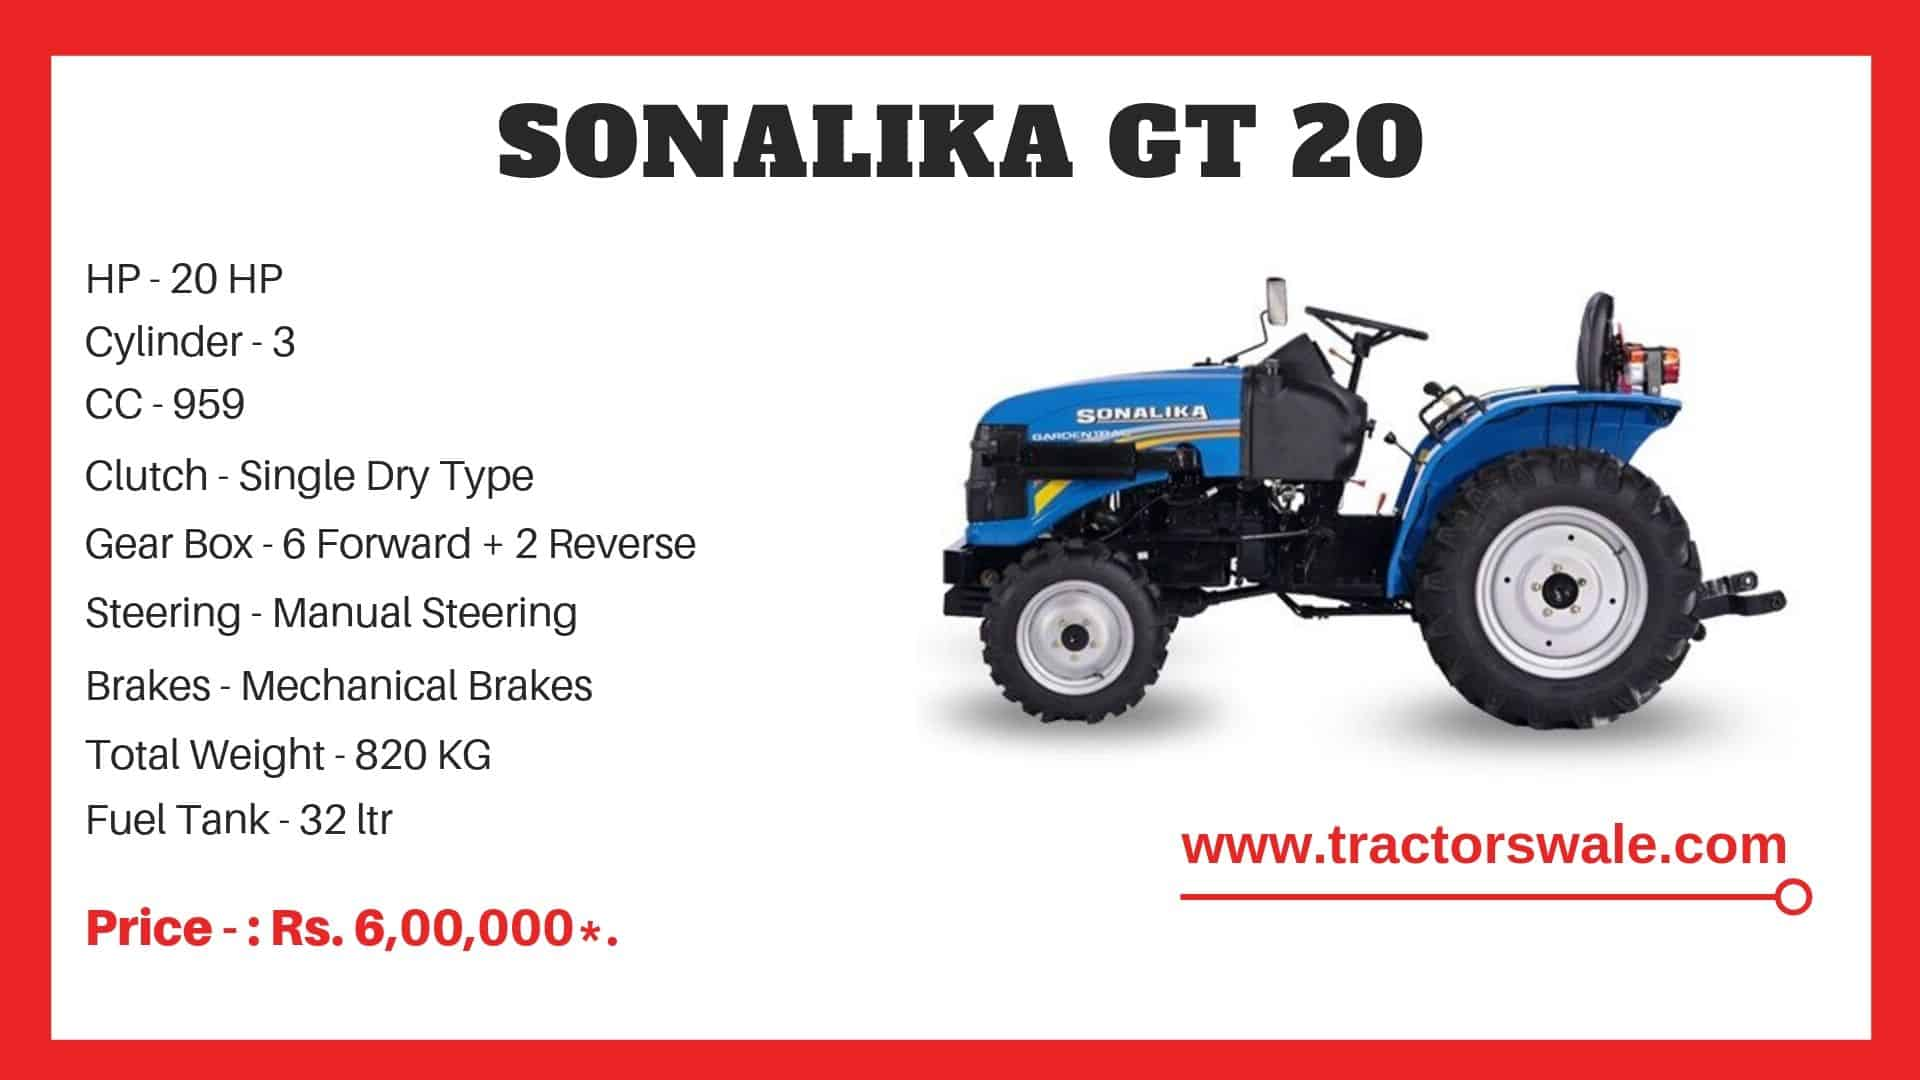 Specifications Of Sonalika GT 20 Tractor